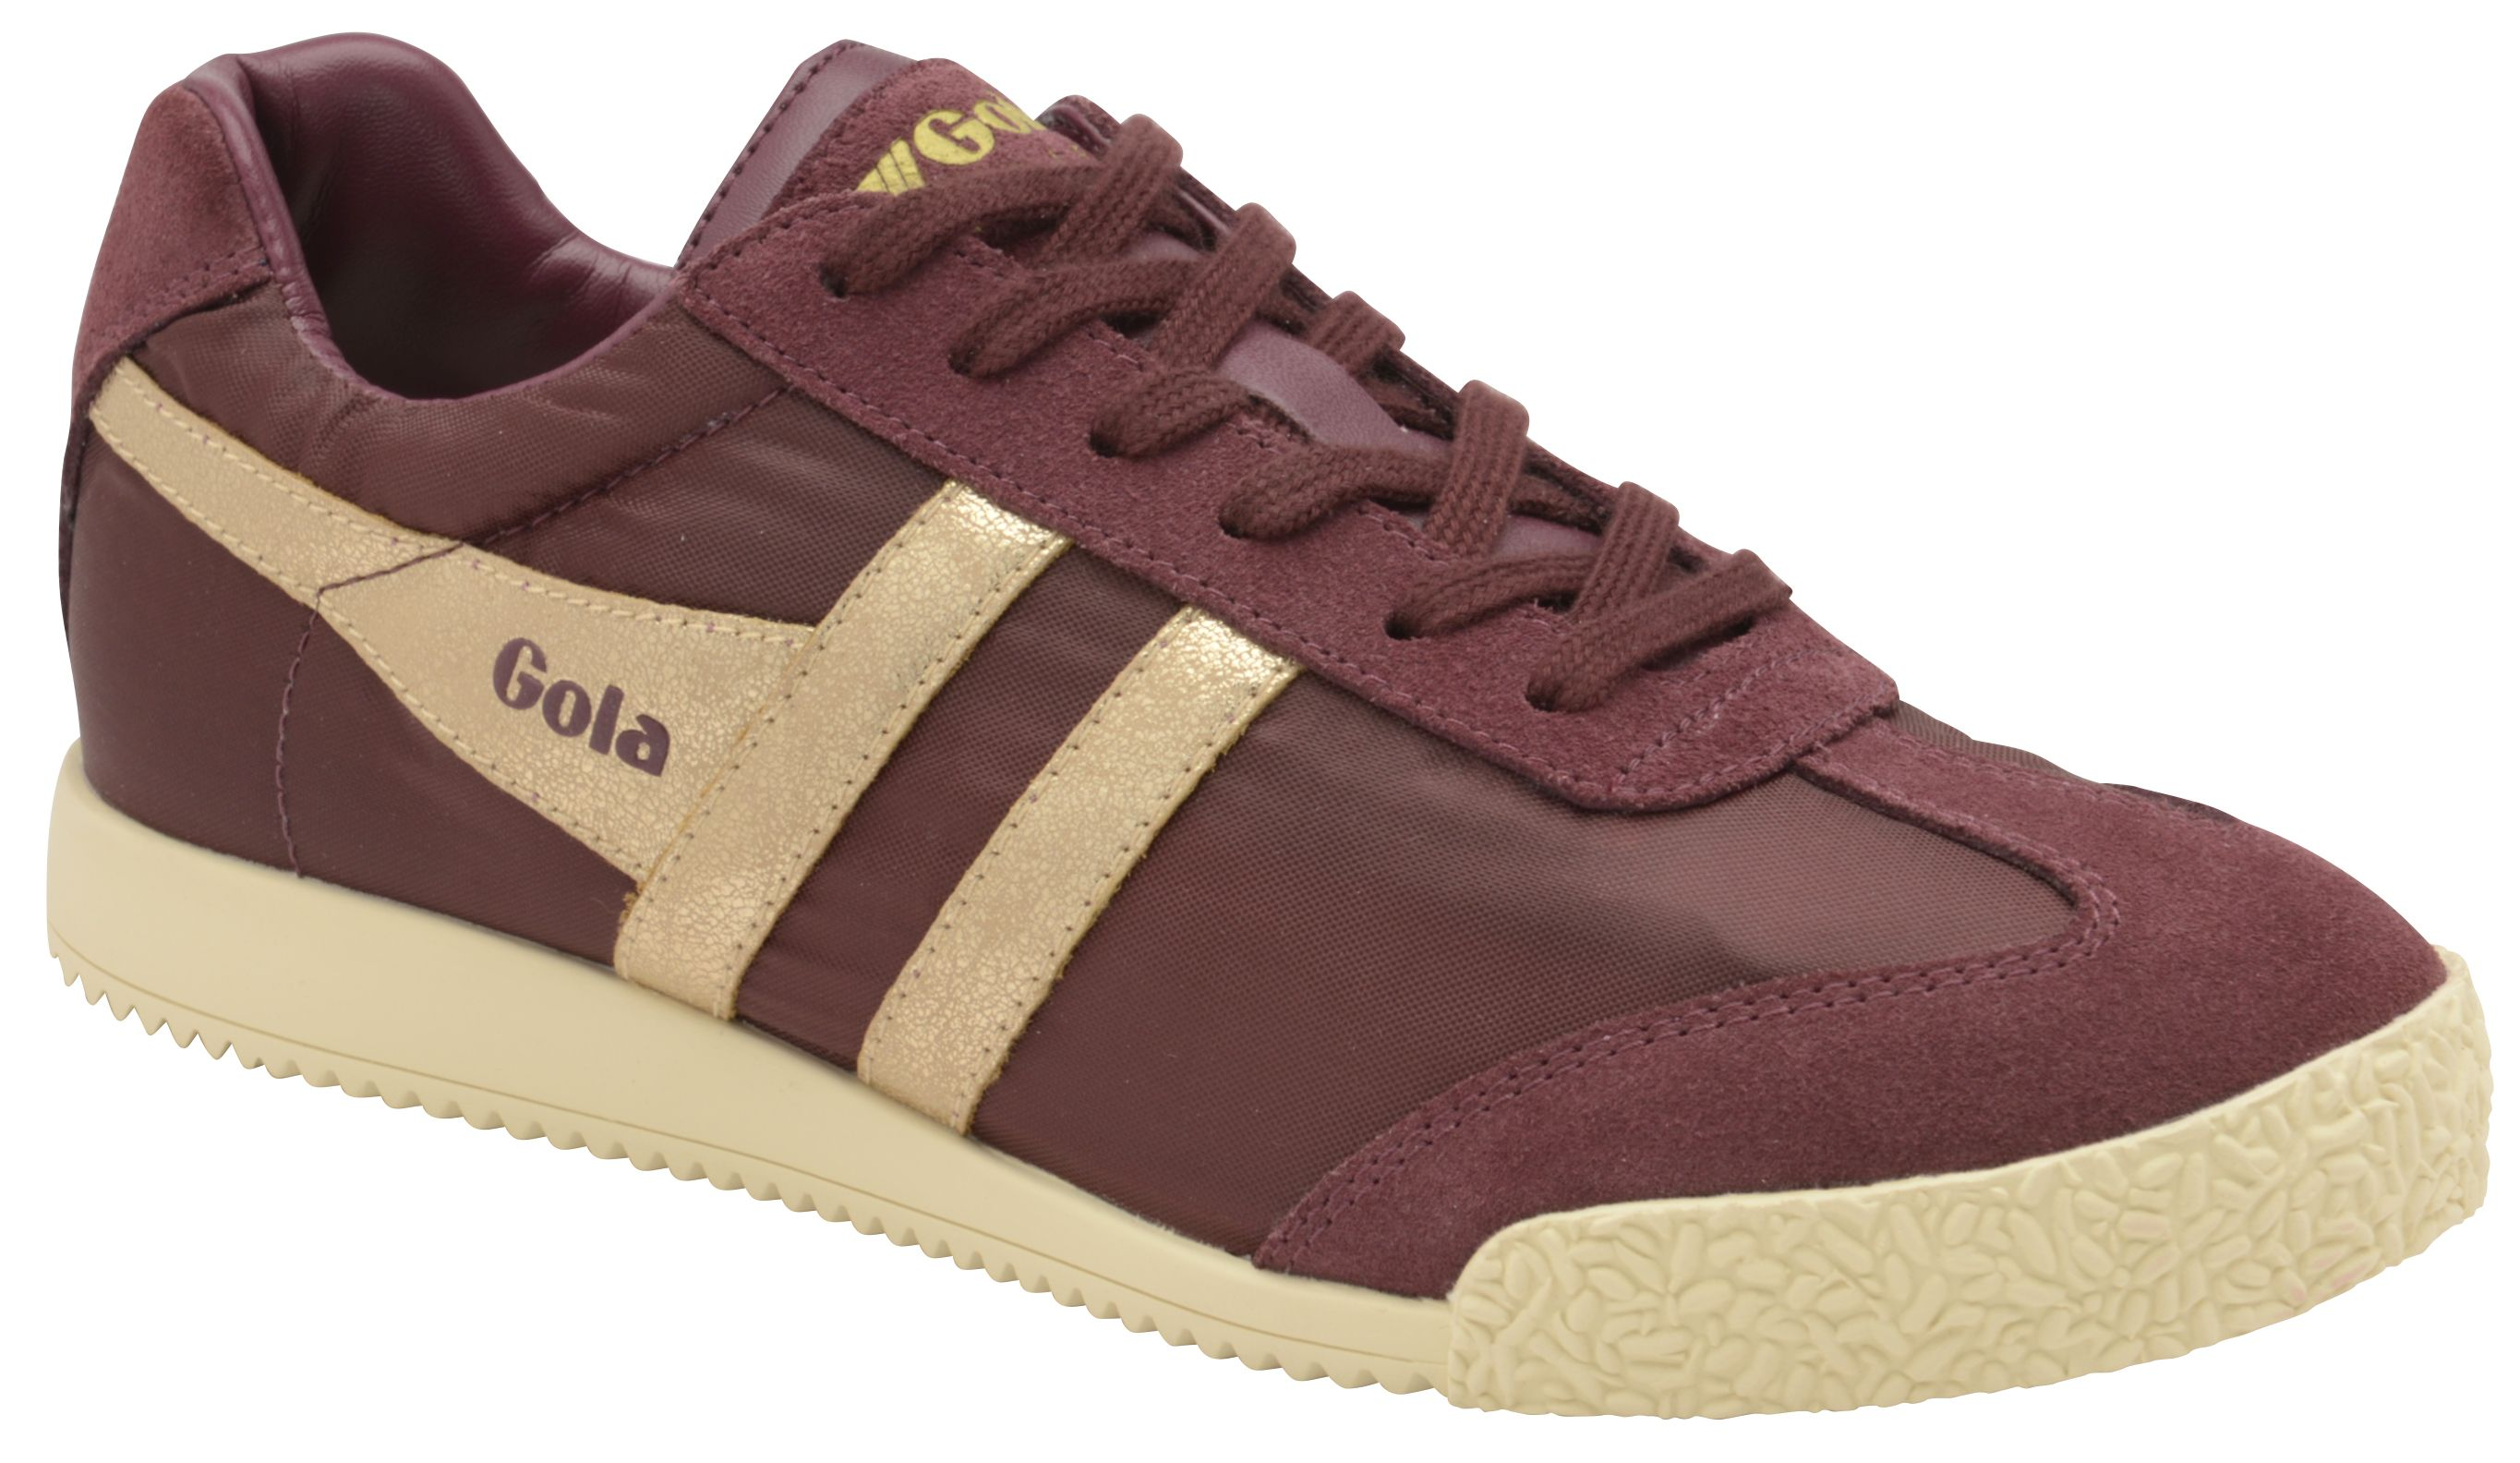 Gola Harrier Nylon Lace Up Trainers, Wine